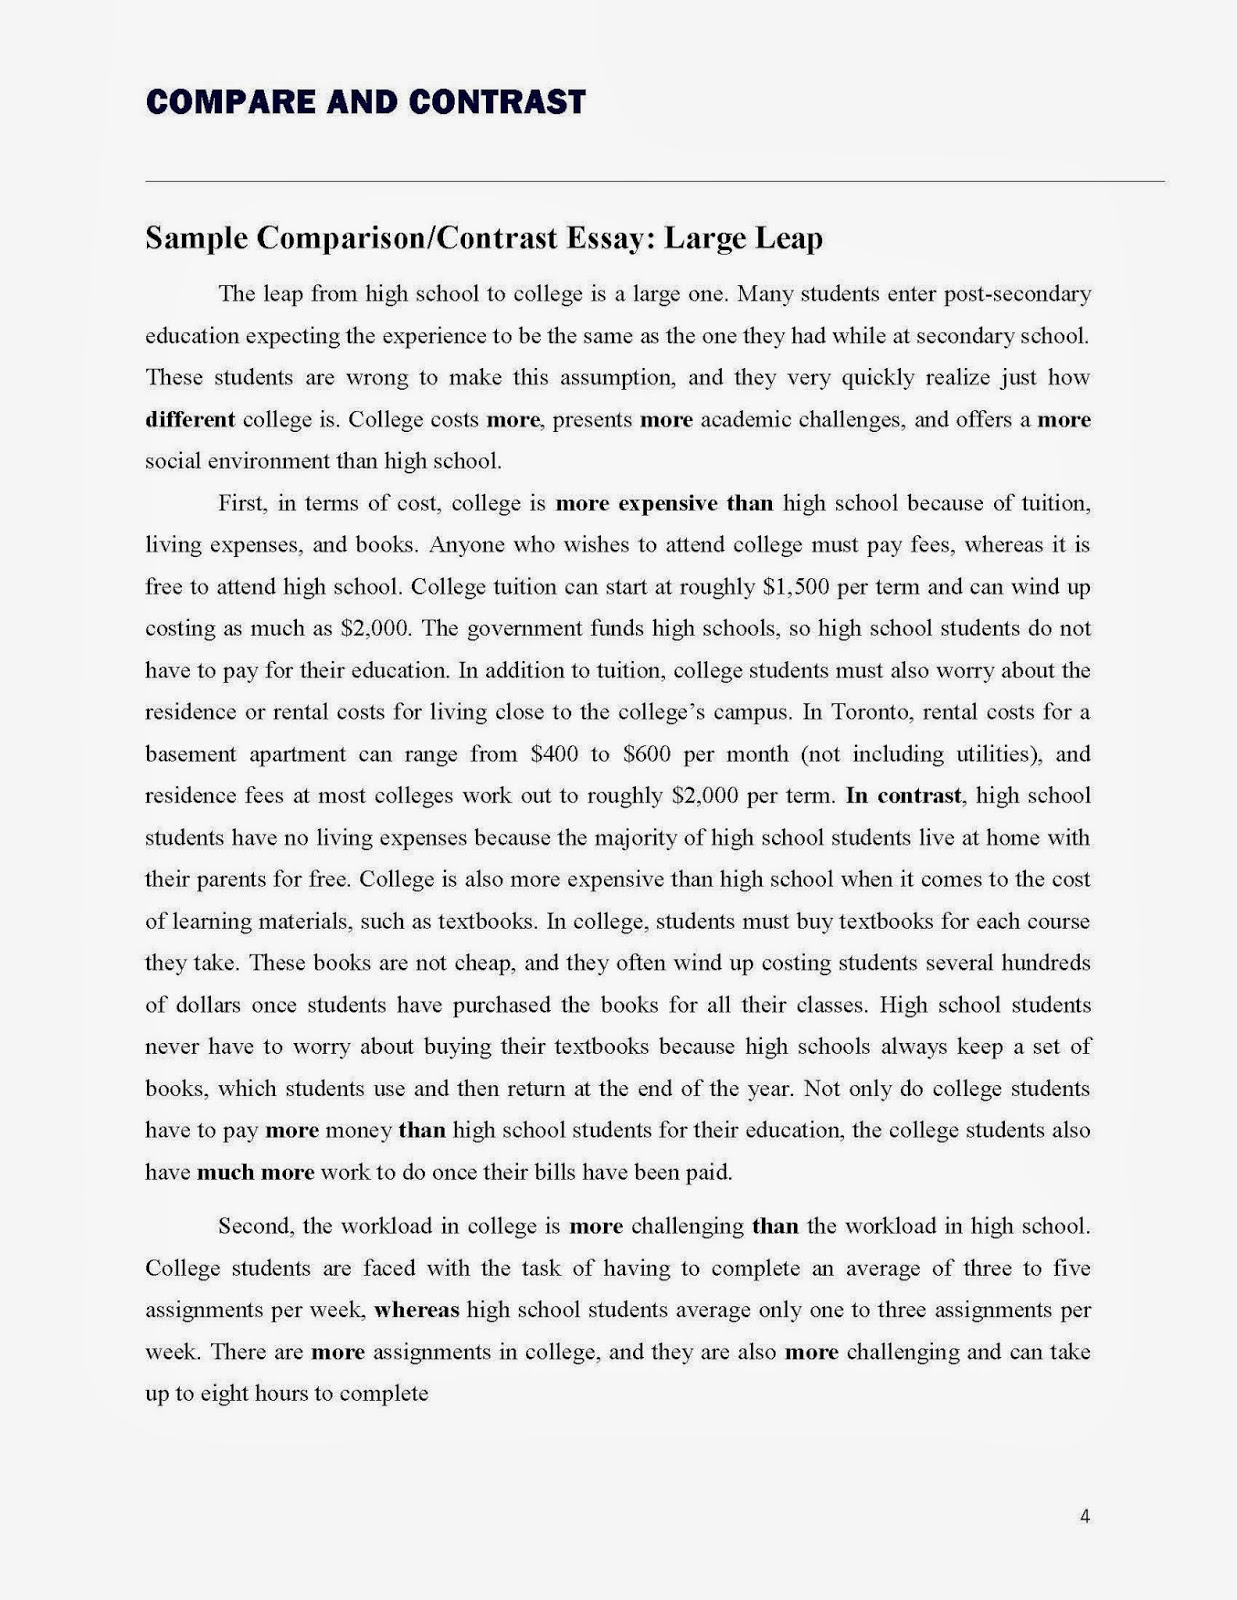 Compare and contrast essay about 2 cars